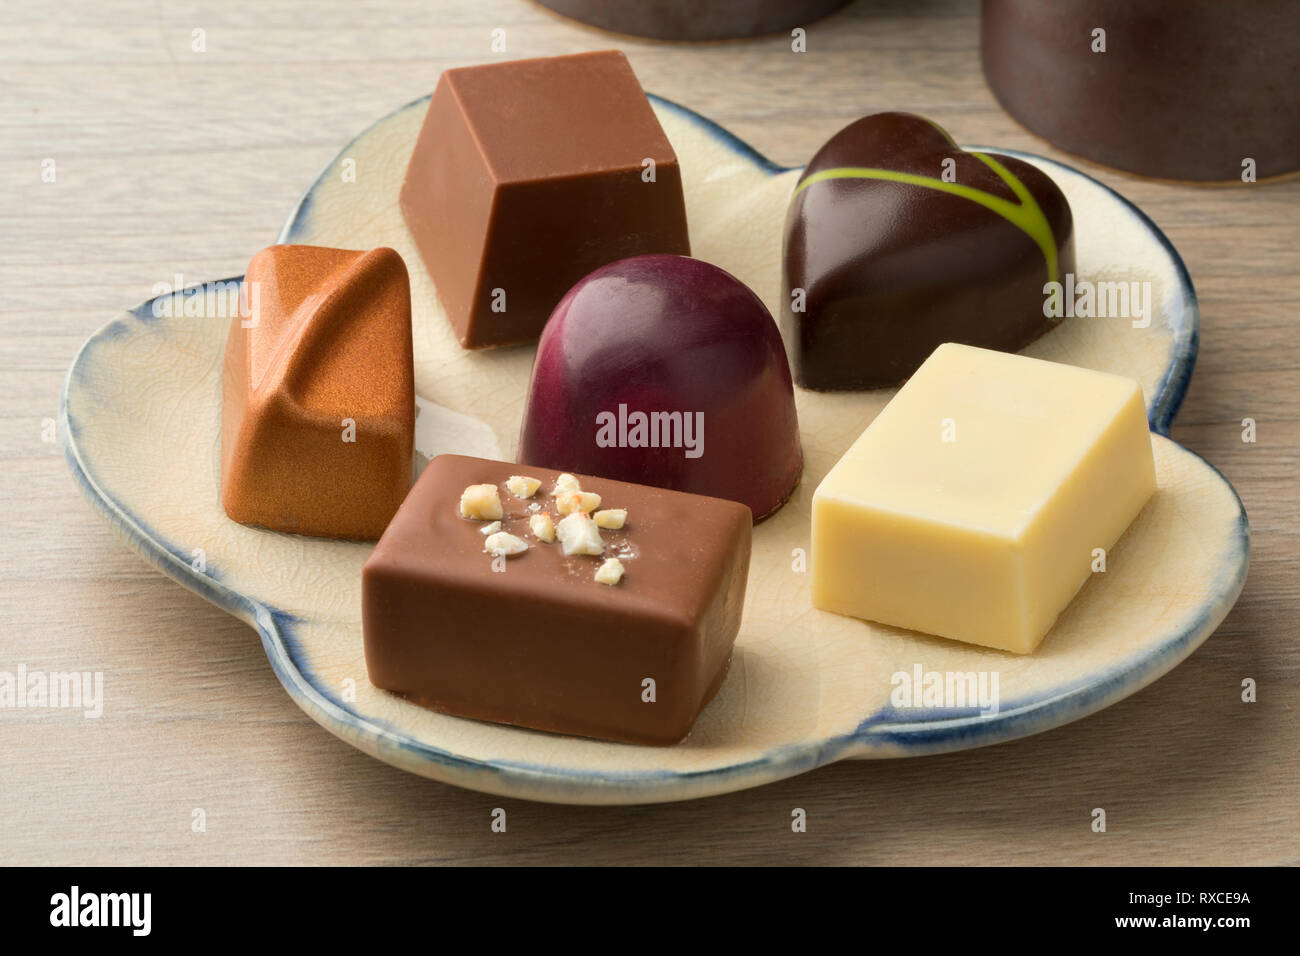 Dish with assorted chocolate bonbons for dessert - Stock Image